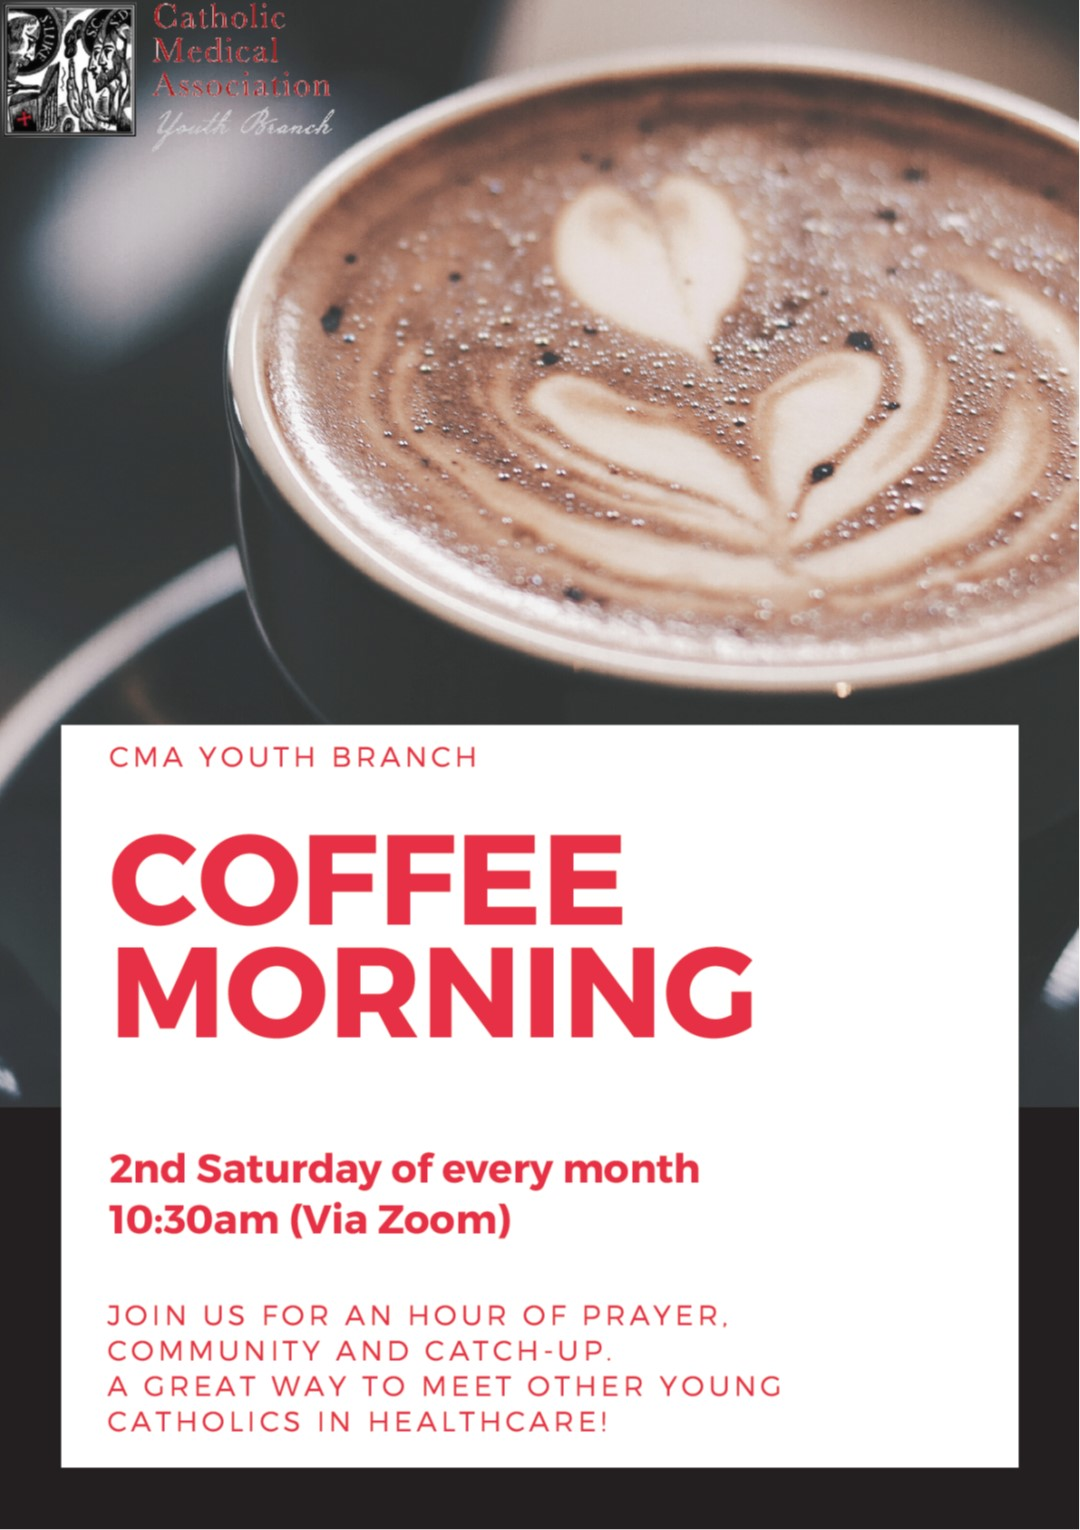 CMA Coffee Morning Poster